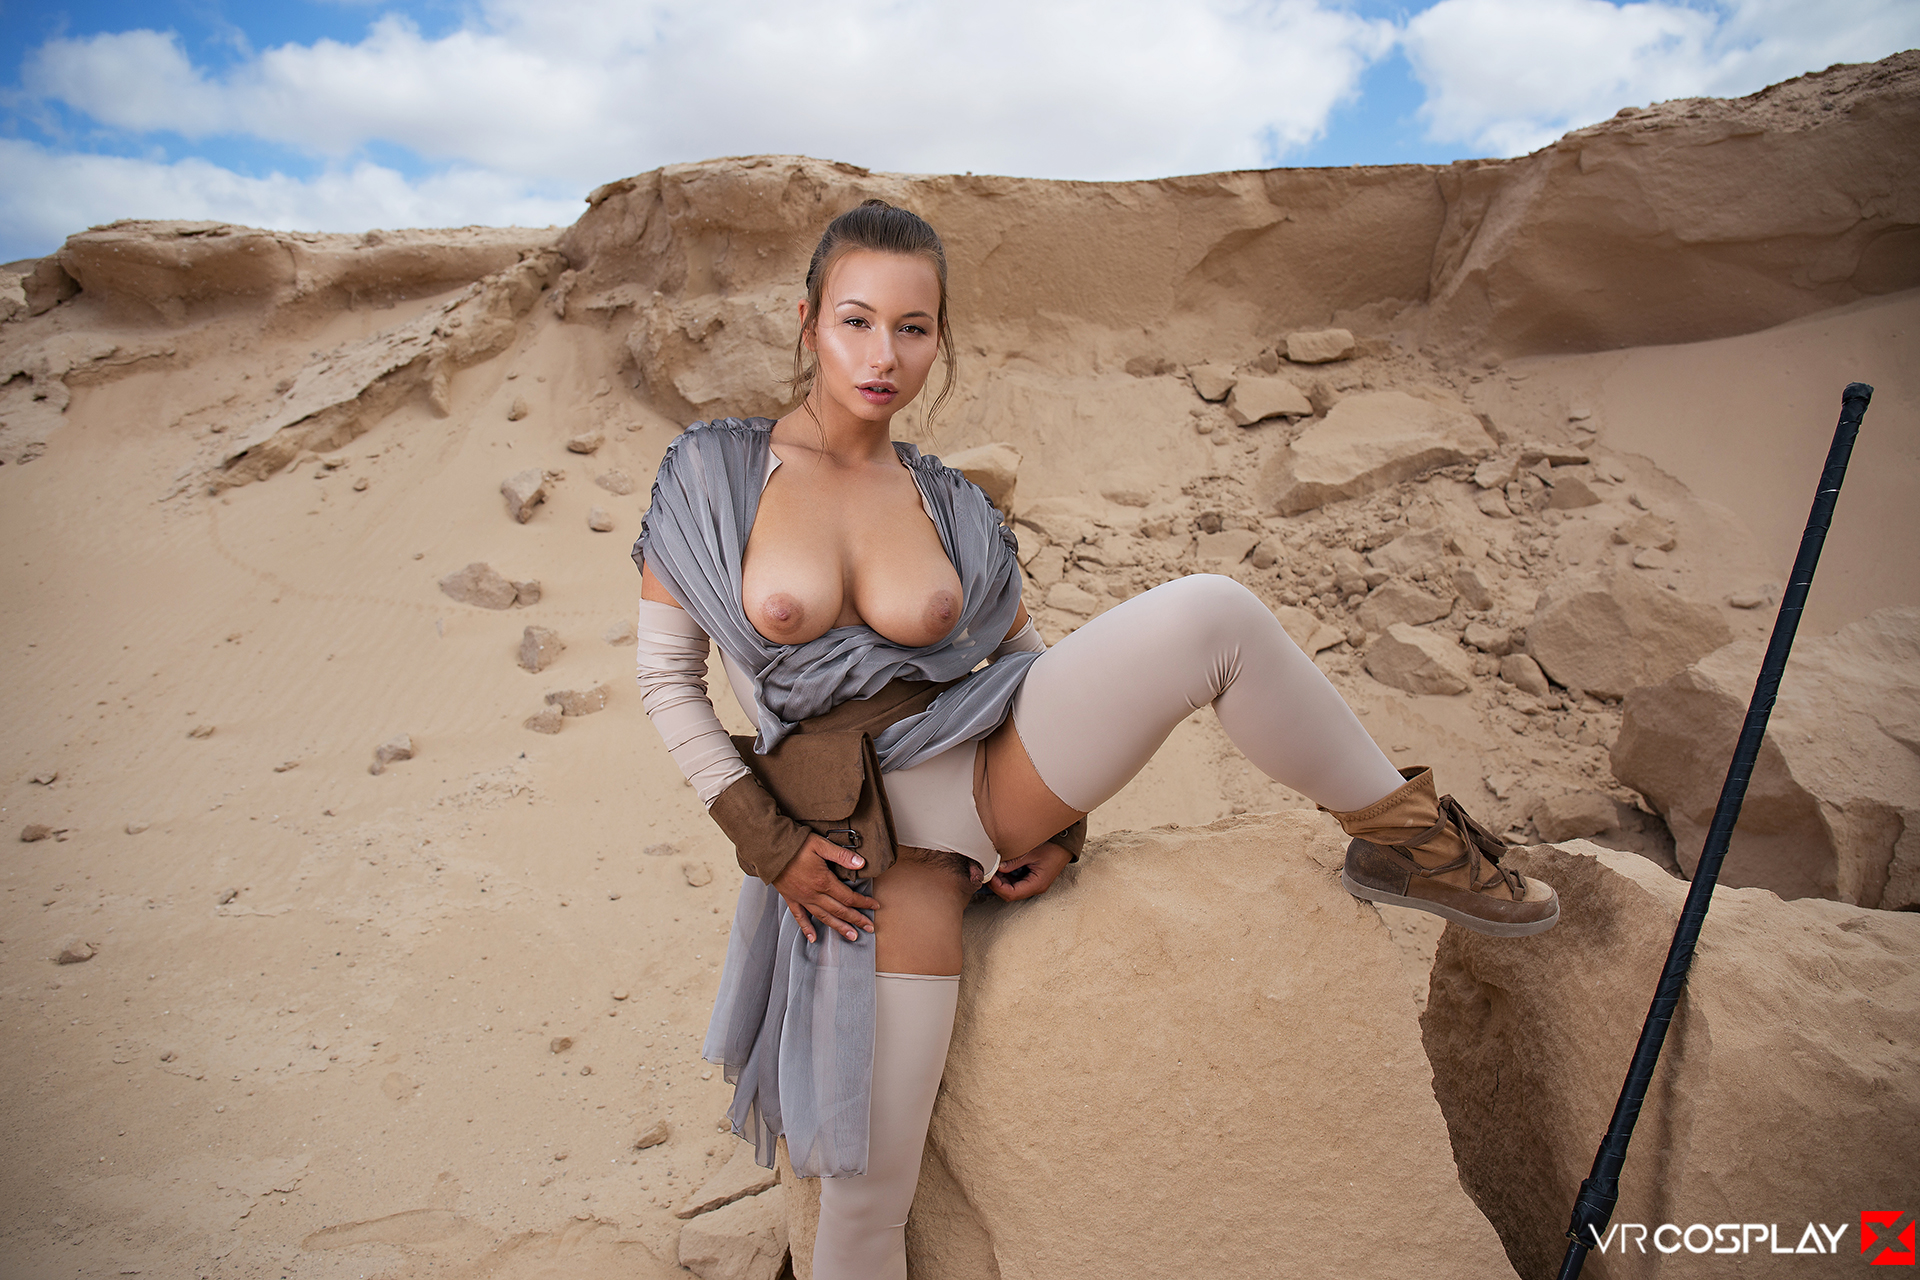 Star Wars Vr Porn Cosplay Starring Taylor Sands As Rey -6152